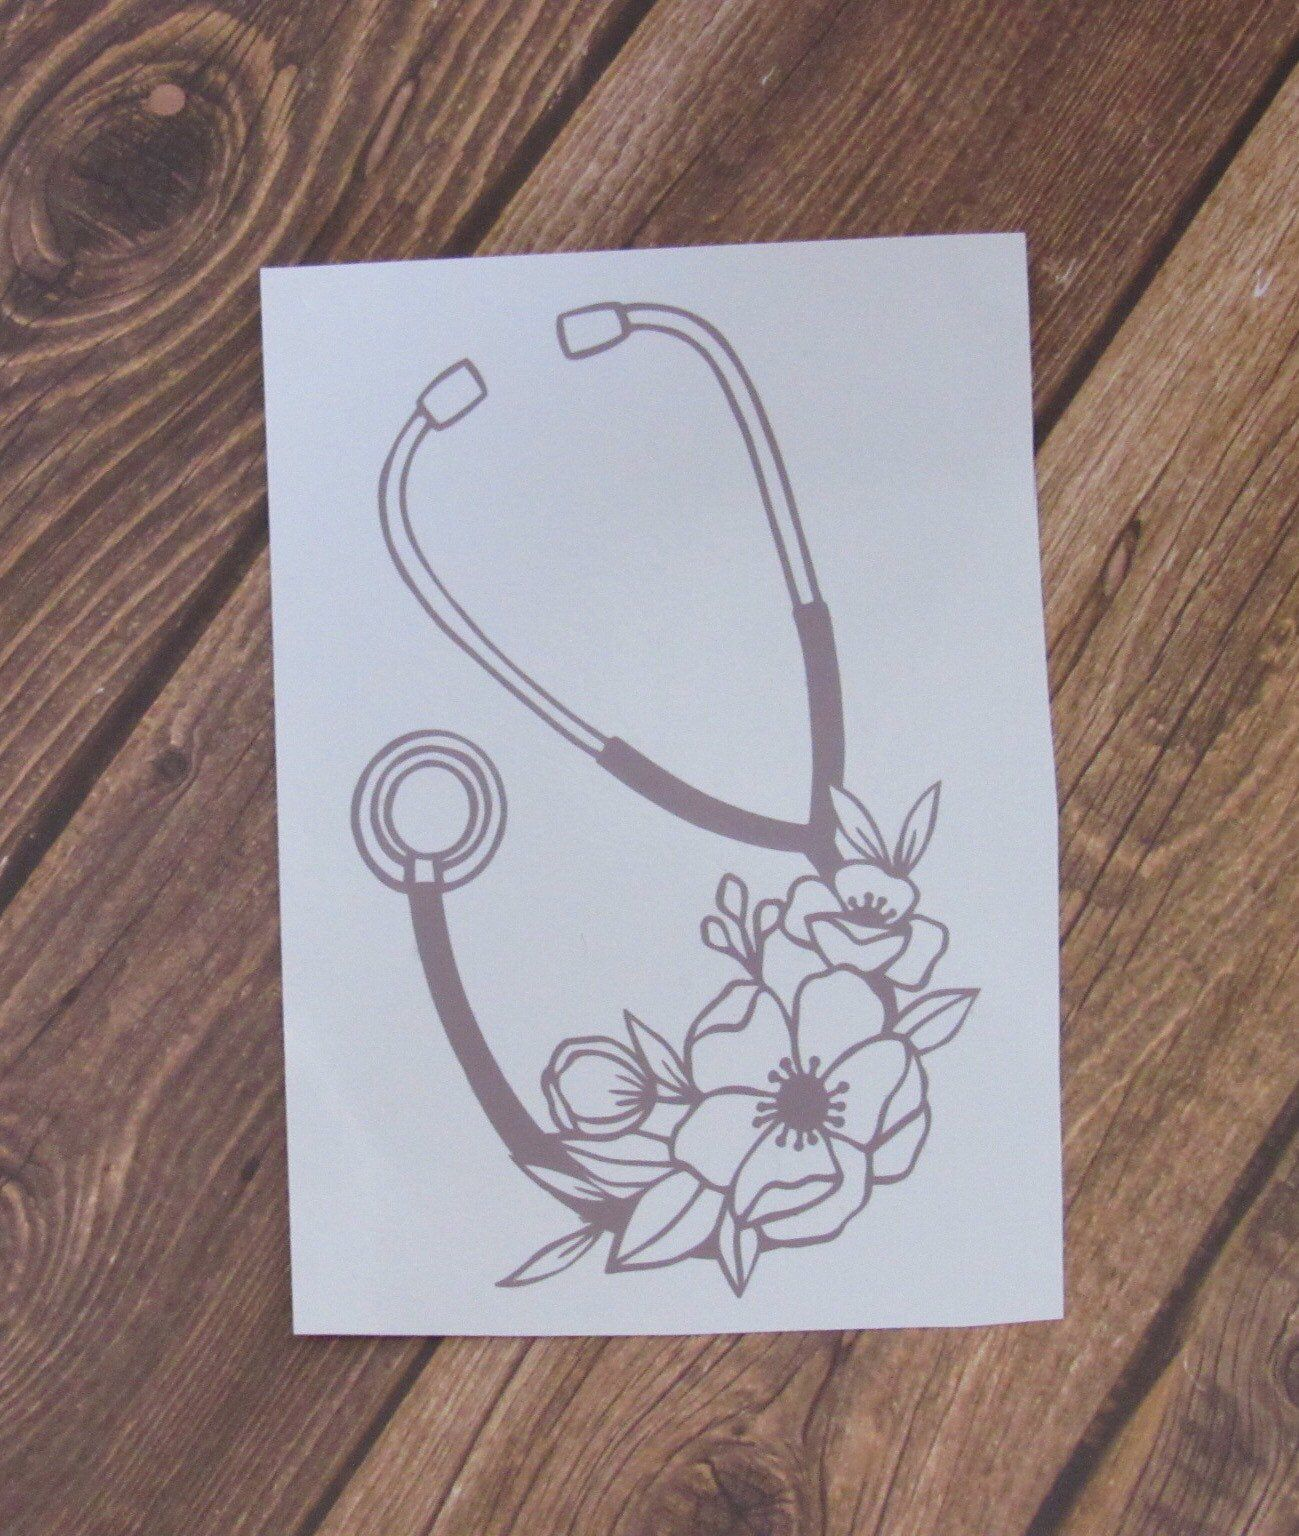 Floral Stethoscope Car Decal Stethoscope Vinyl Decal Floral Etsy Nurse Stickers Vinyl Decals Car Decals Vinyl Decals [ 1536 x 1299 Pixel ]